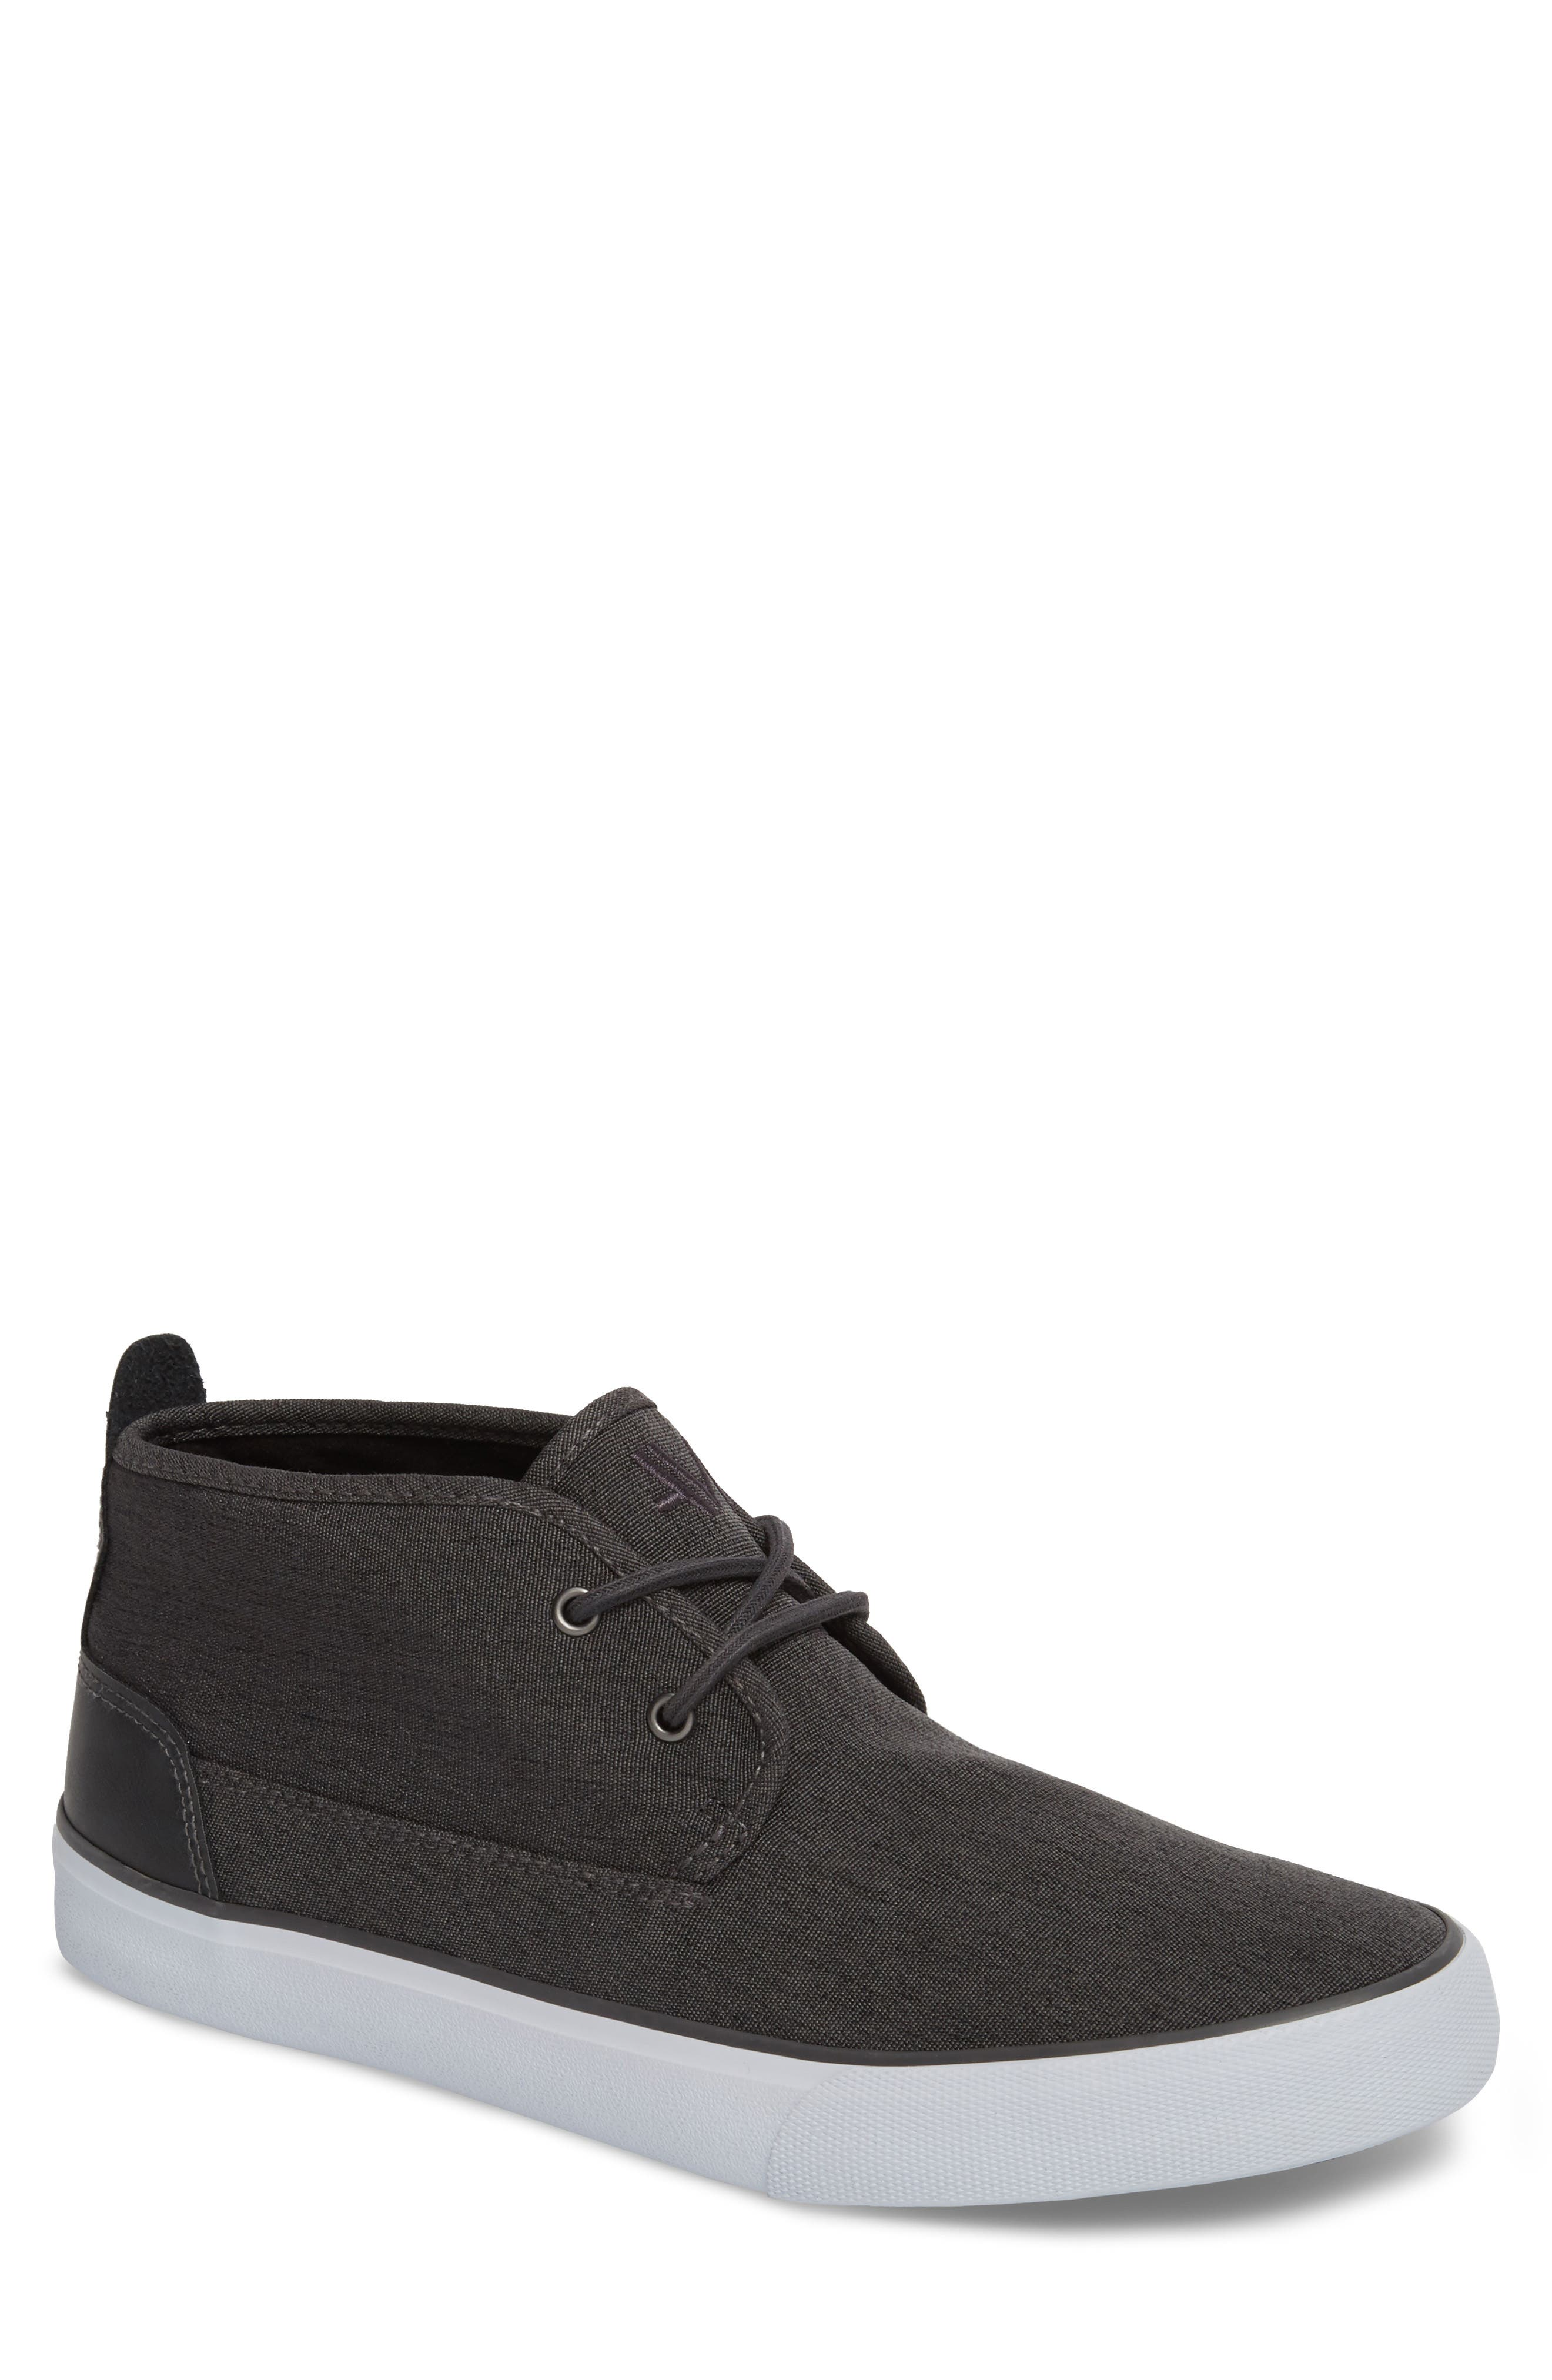 Reade Chukka Sneaker,                         Main,                         color, 027